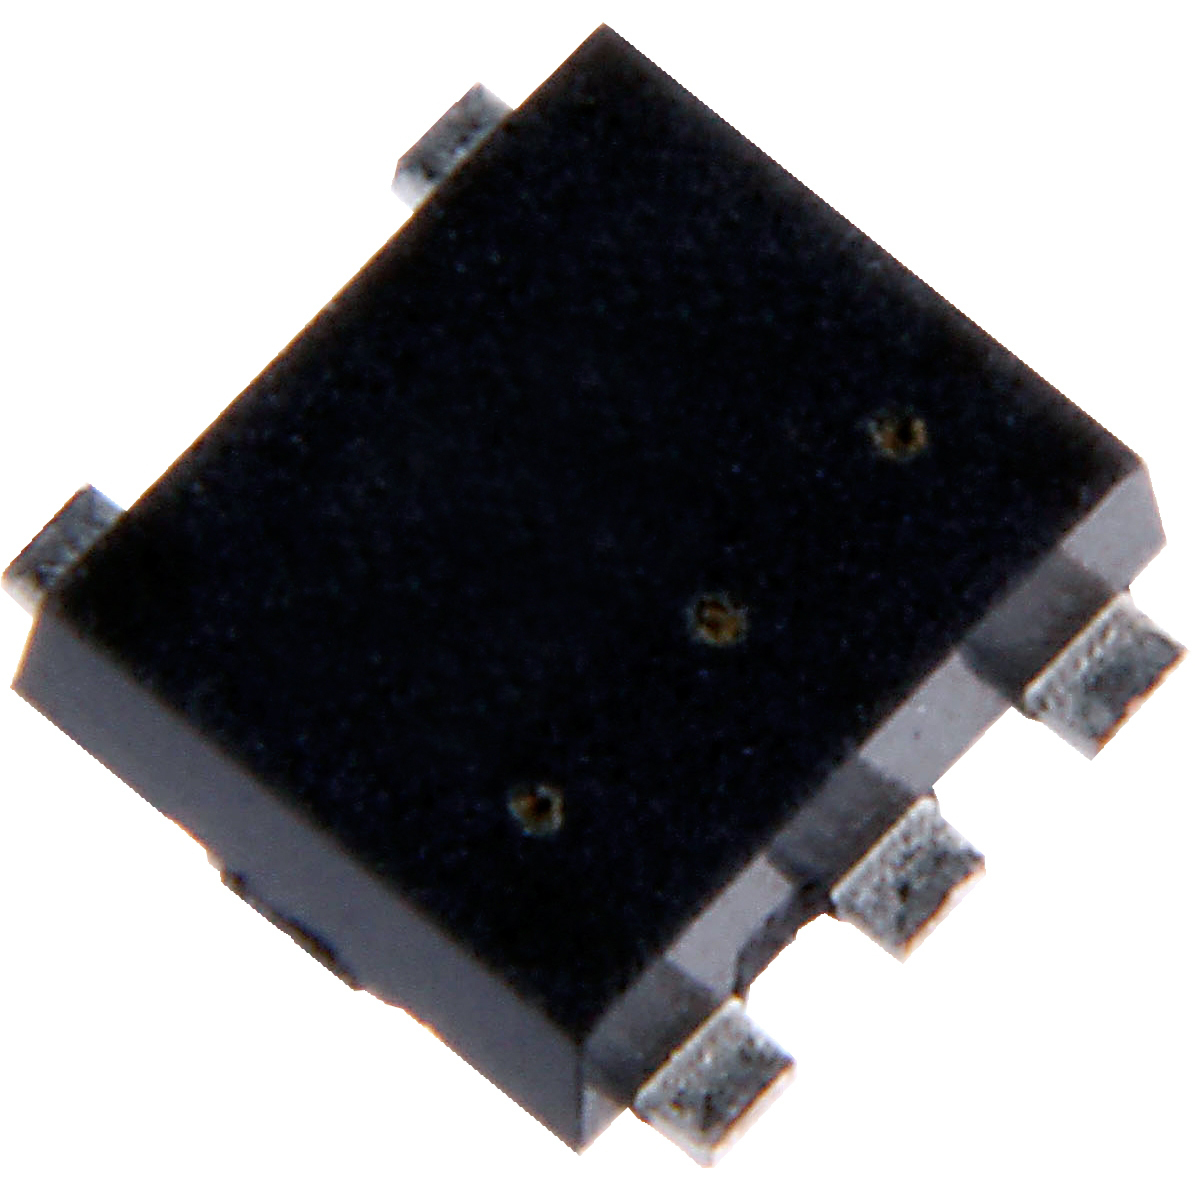 """Toshiba: A new operational amplifier """"TC75S67TU"""" that realizes industry-leading low noise. (Photo: Business Wire)"""